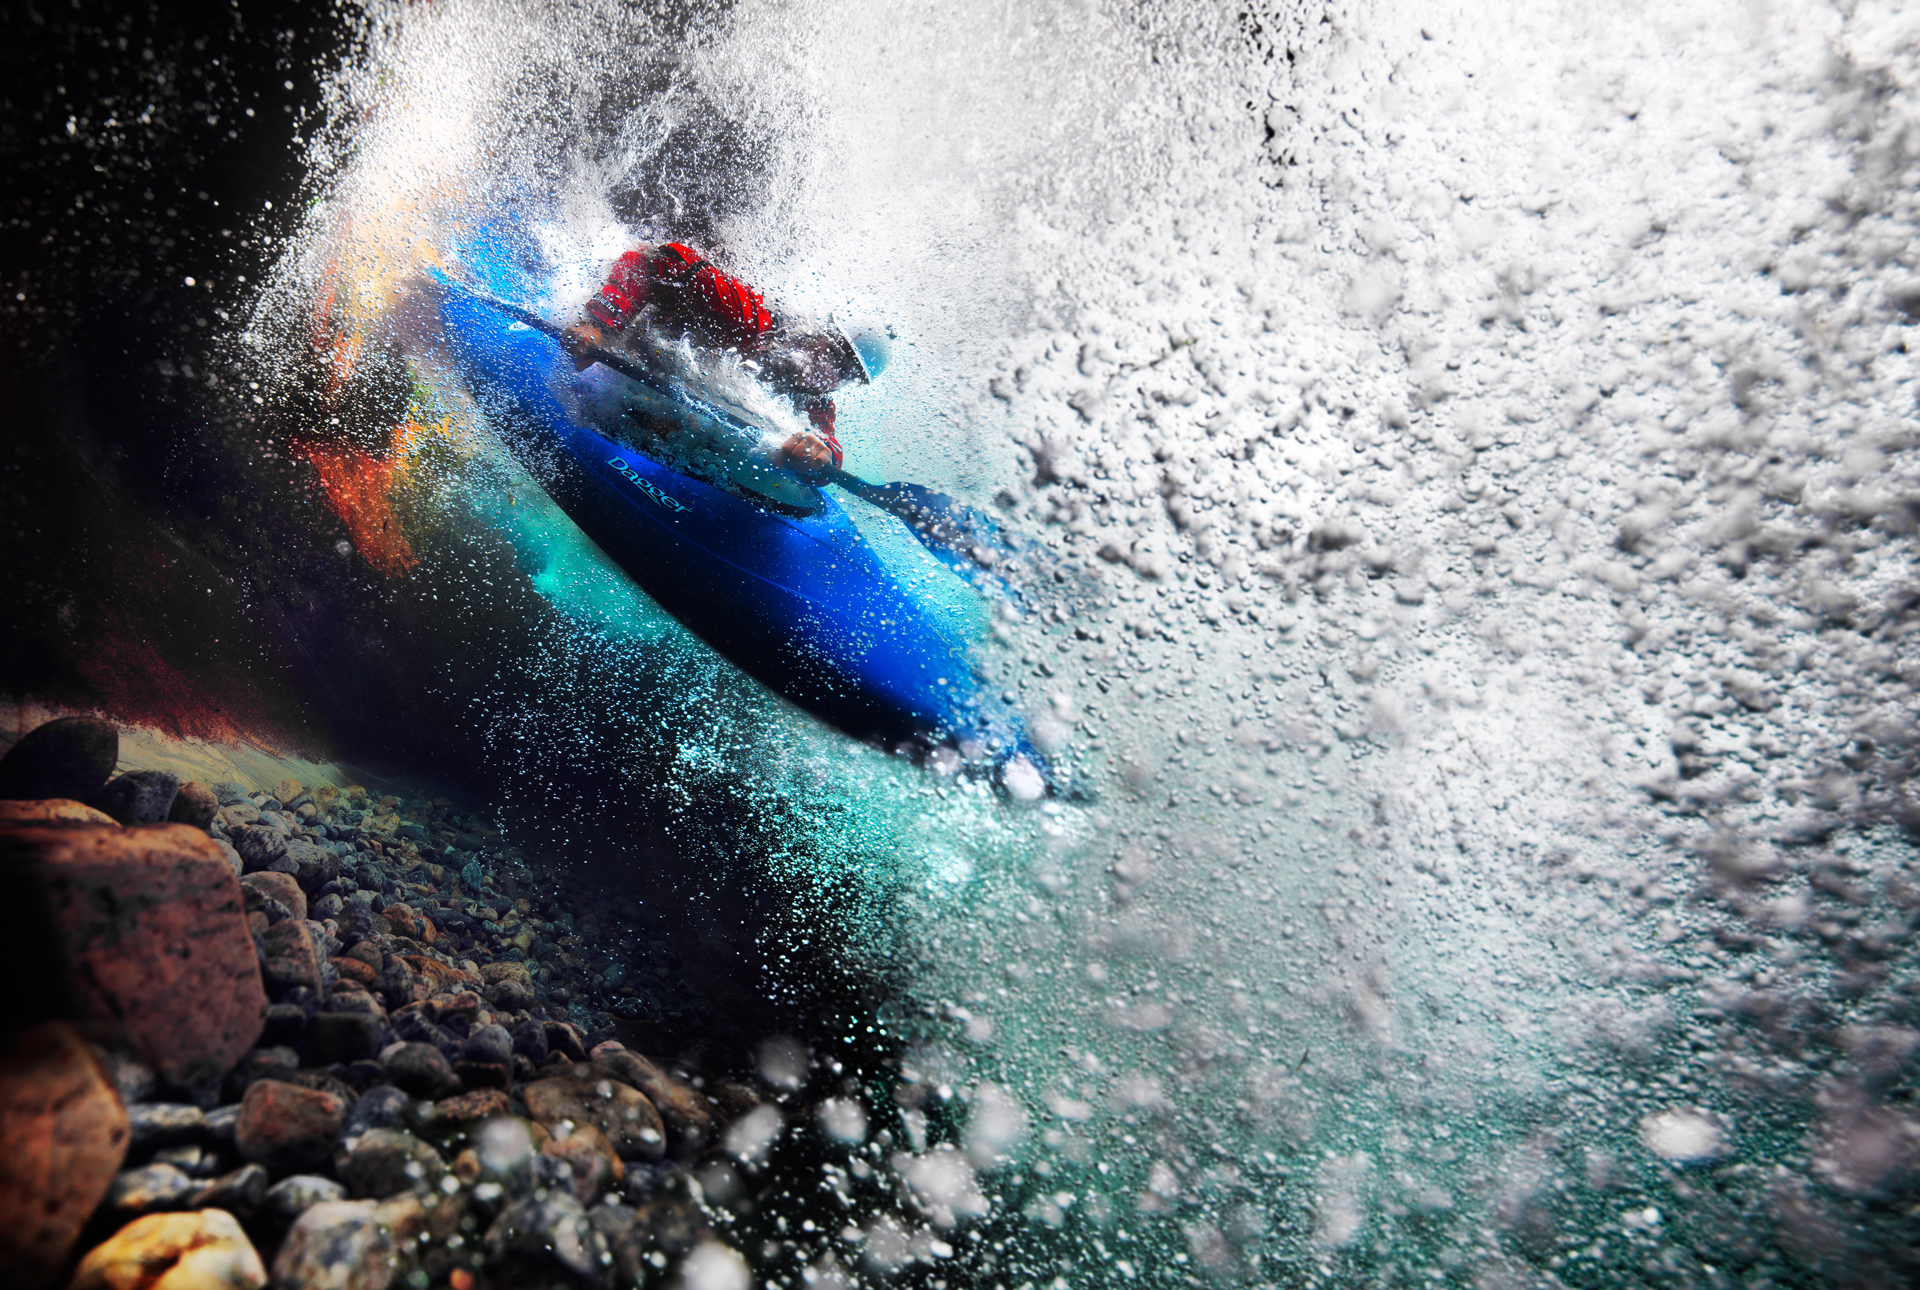 River_Kayak_Underwater_WebJPEG_FINAL.jpg